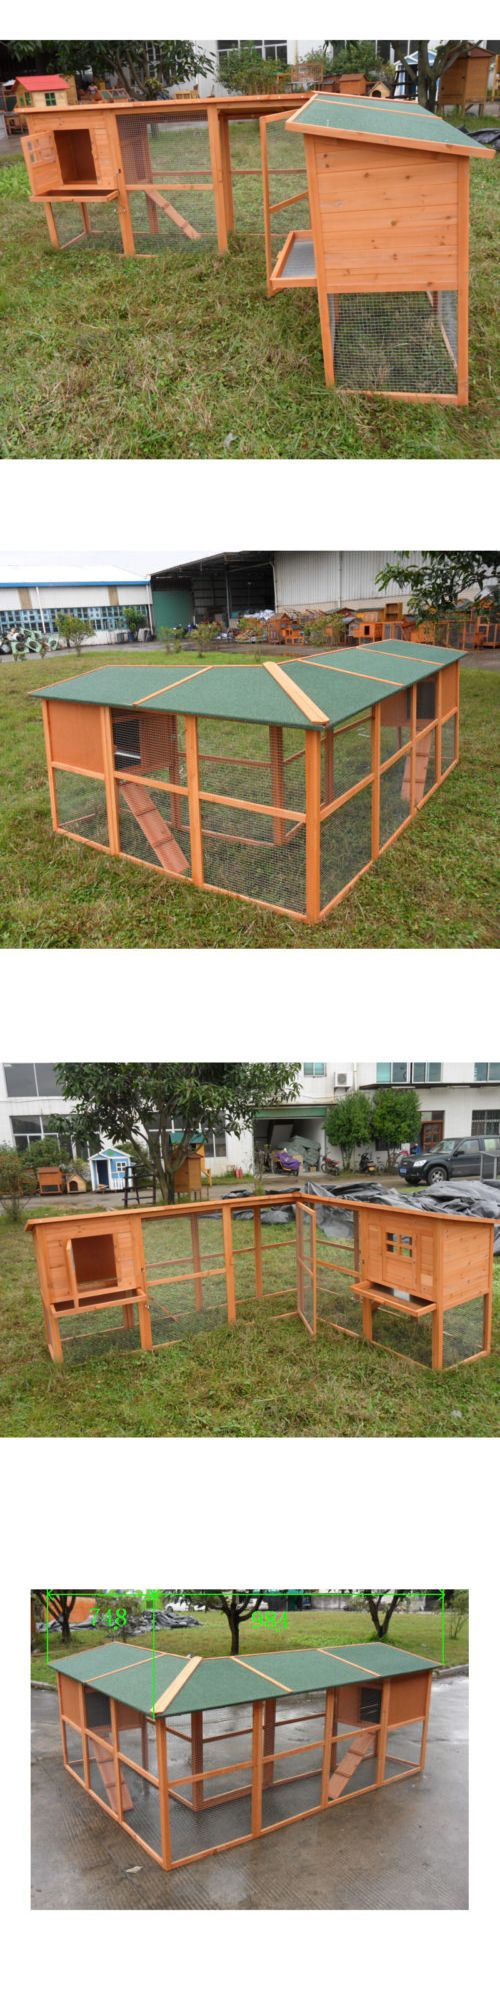 Backyard Poultry Supplies 177801: Premium Large Rabbit Hutch Chicken Coop Small Animal Cage W Two Bedrooms -> BUY IT NOW ONLY: $205.96 on eBay!